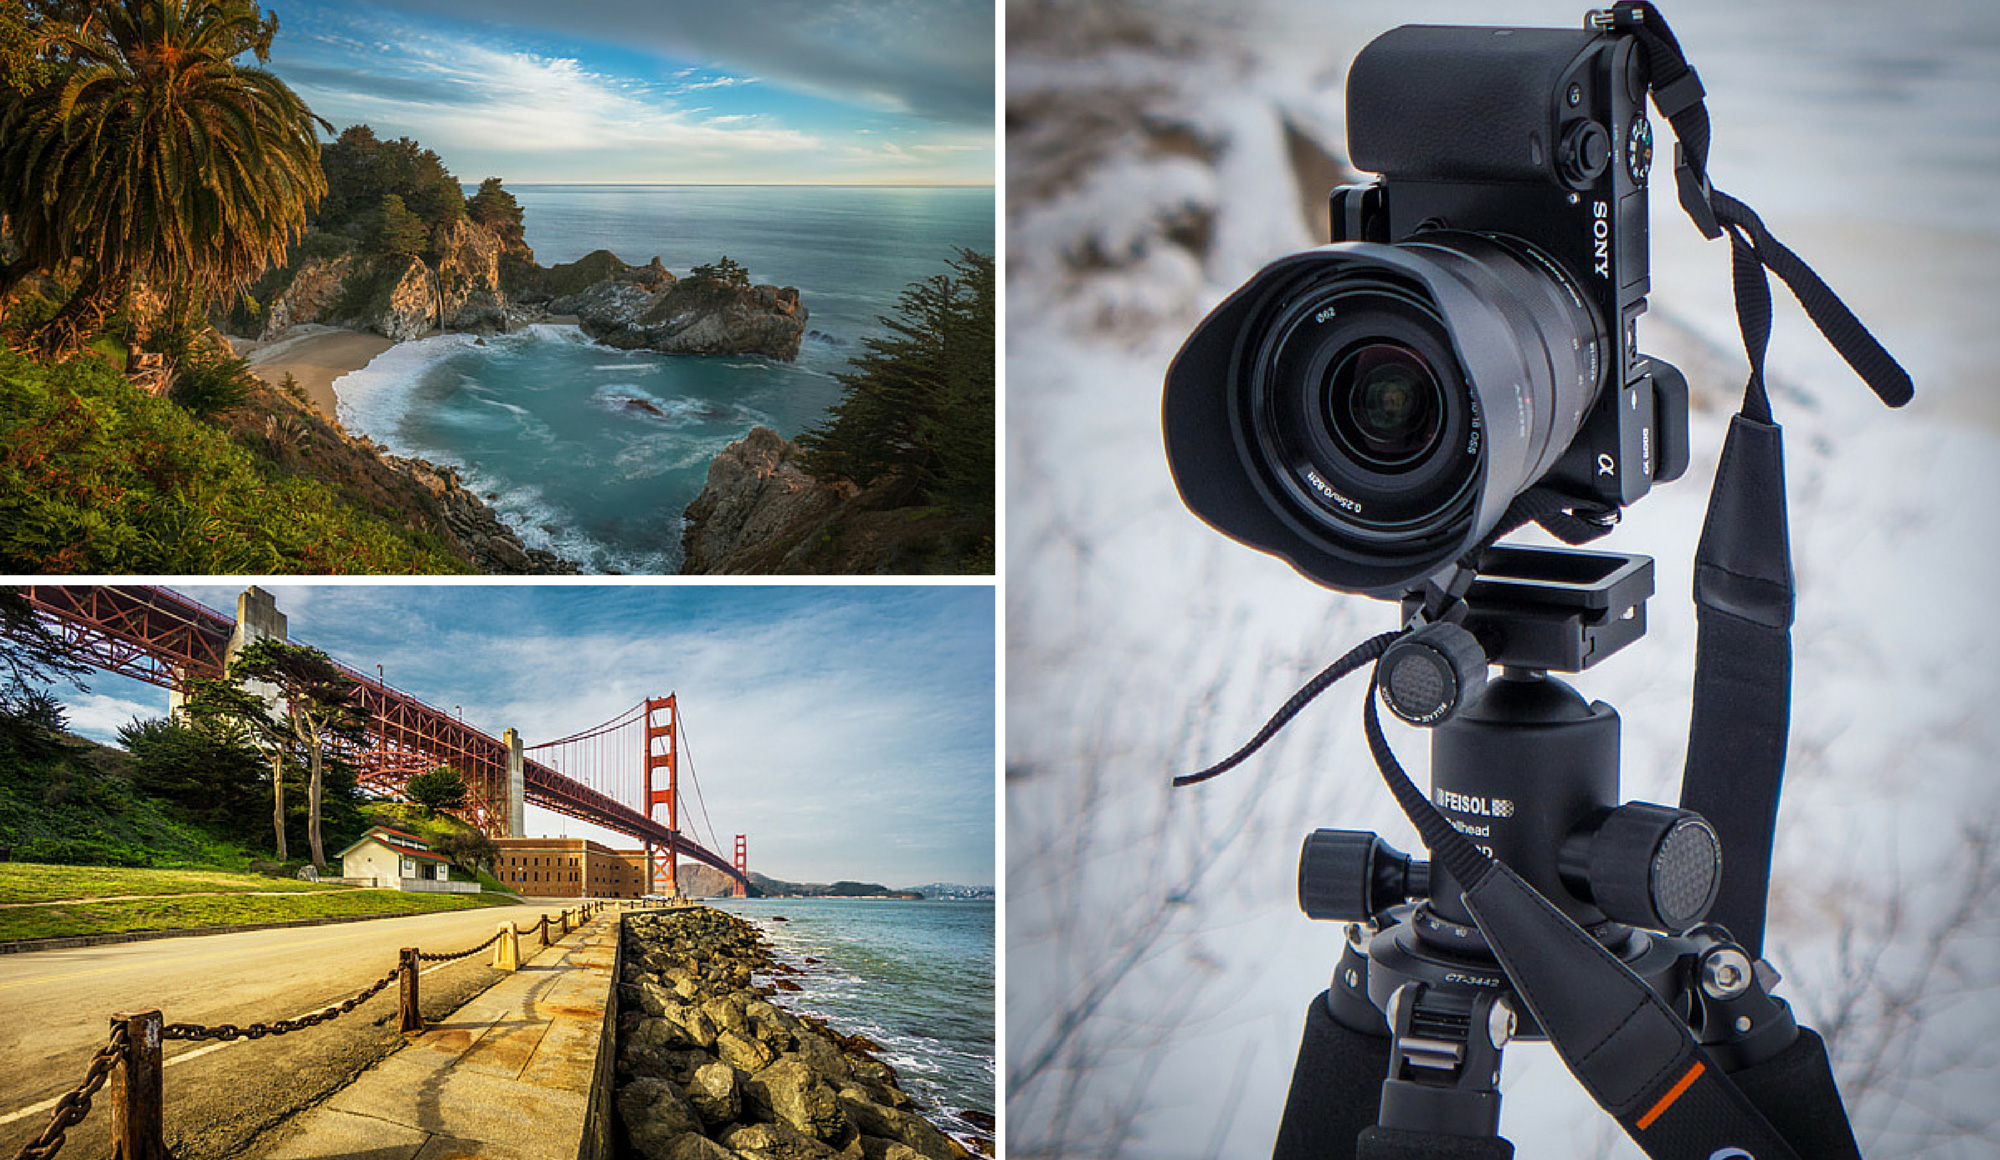 5 Lessons Learned Switching from DSLR to Mirrorless for ...